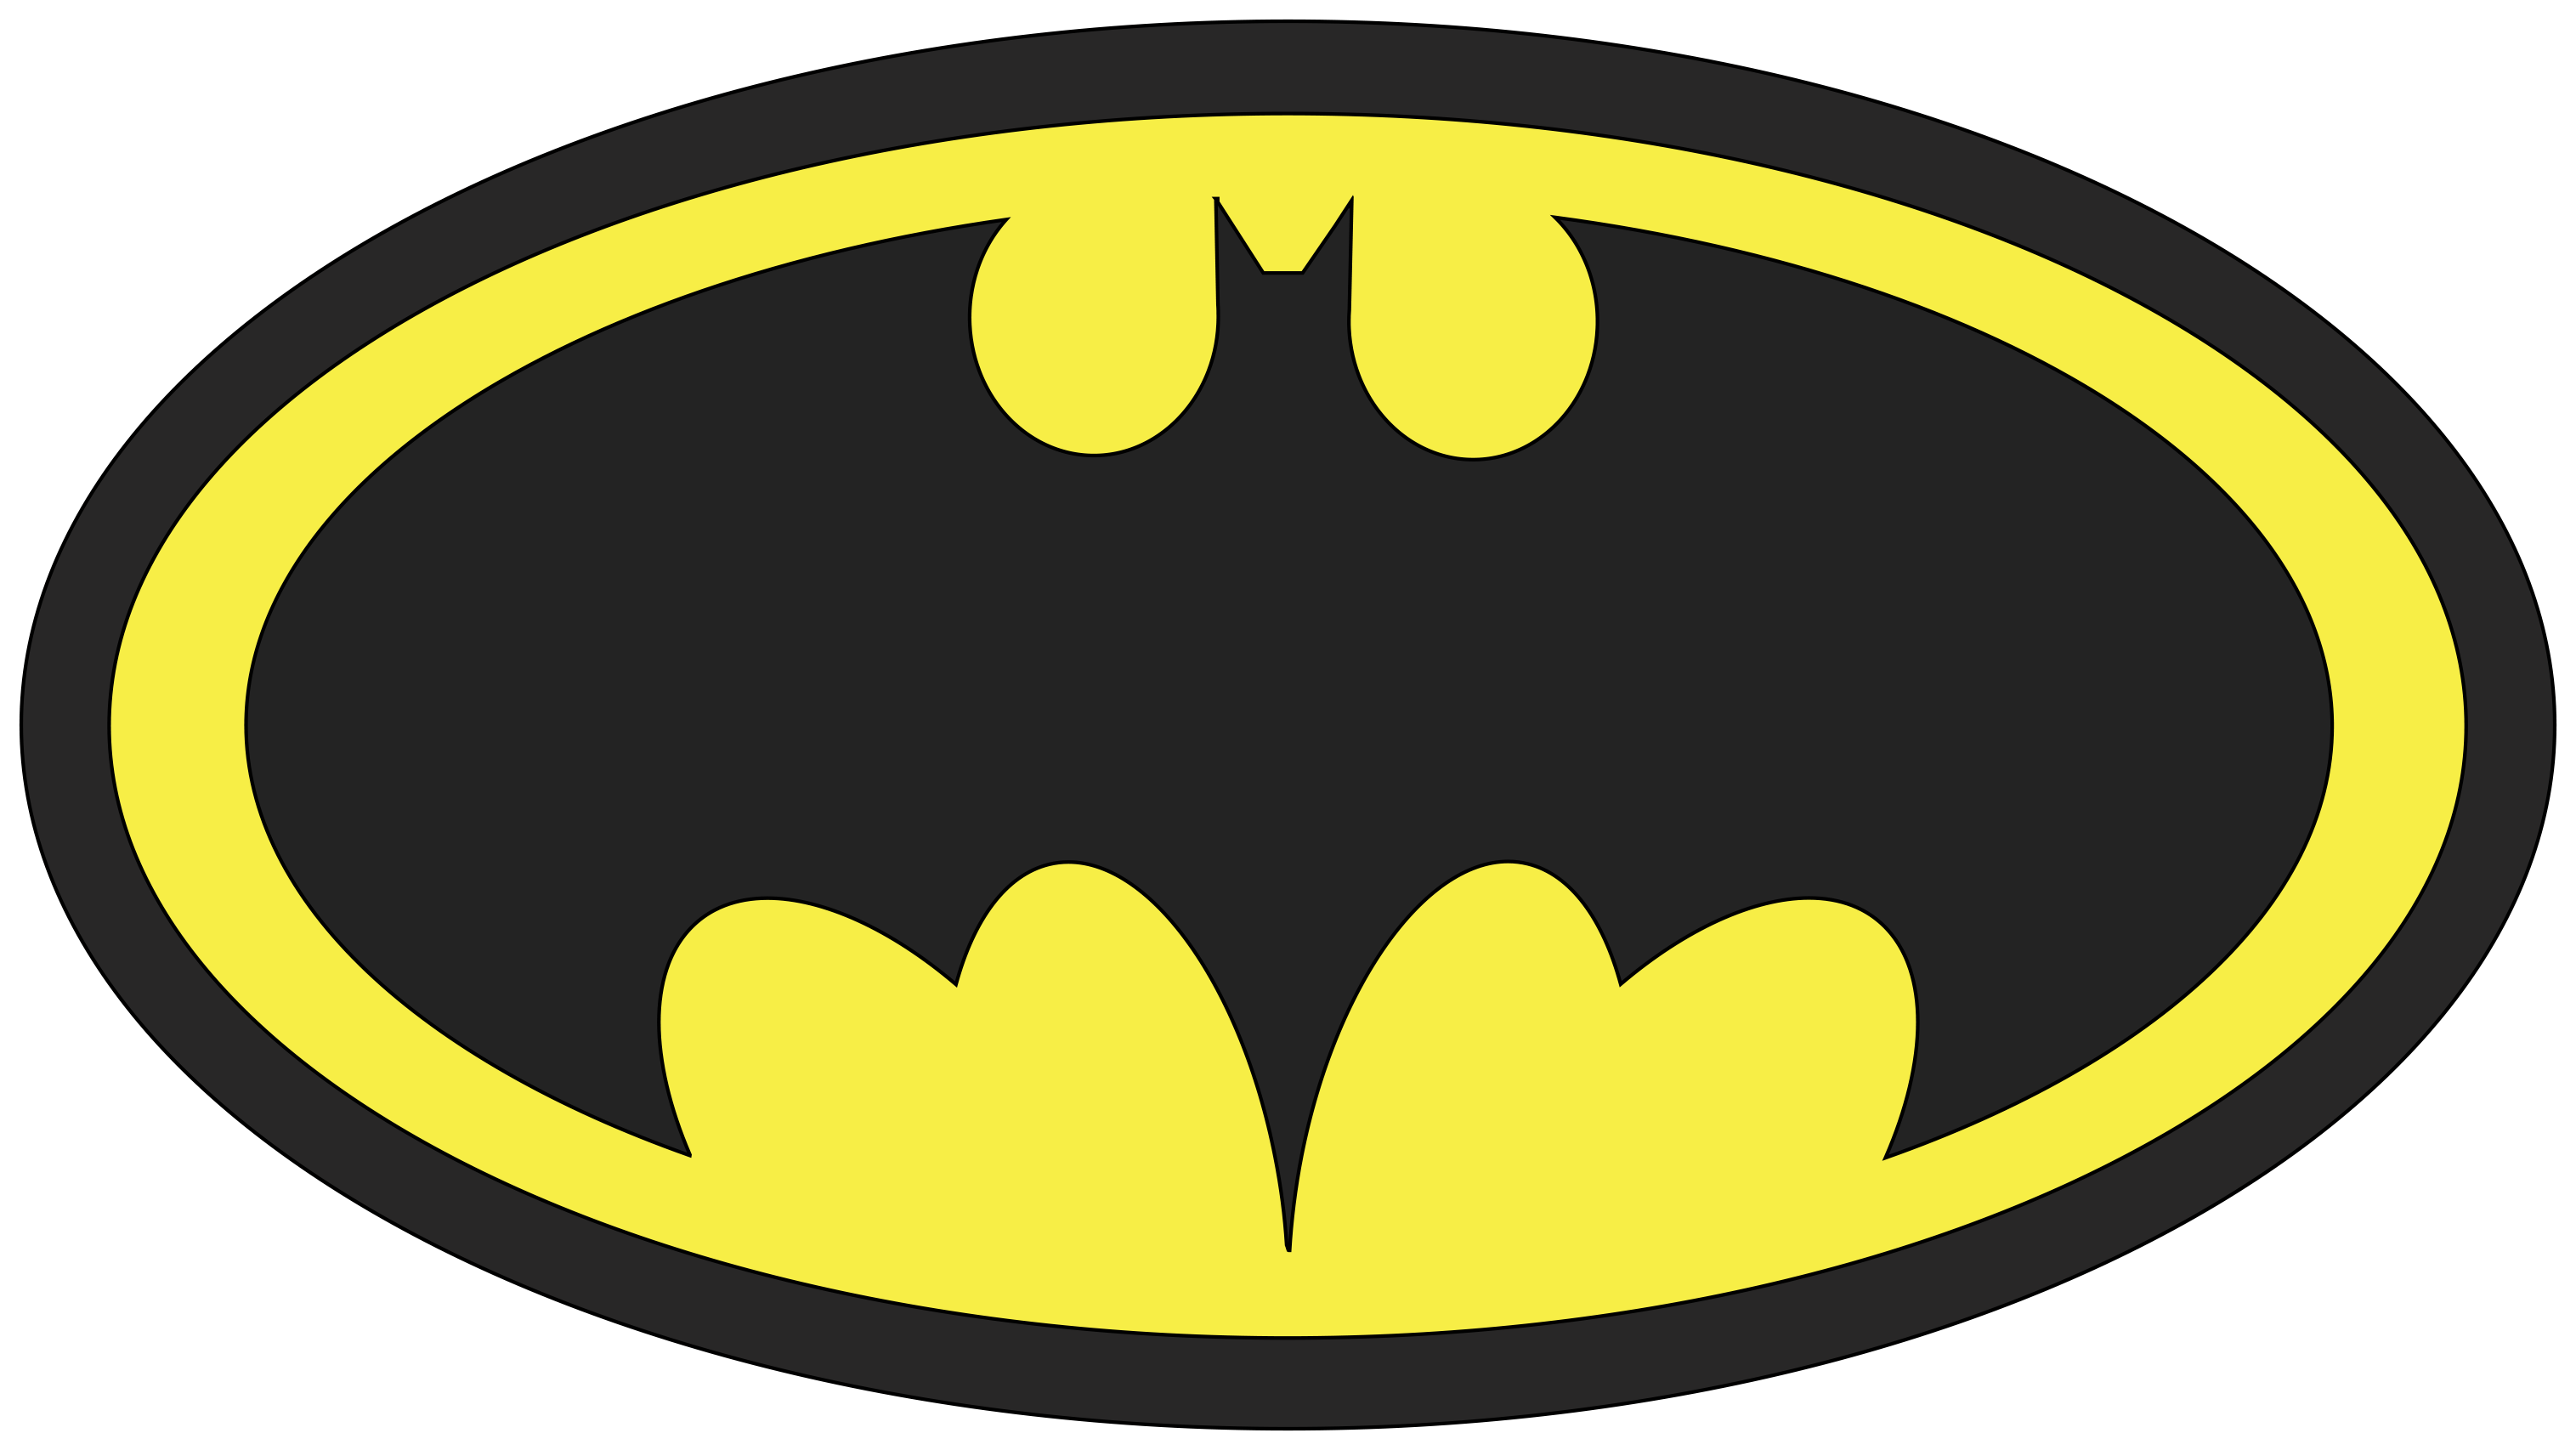 Picture of batman logo Batman symbol